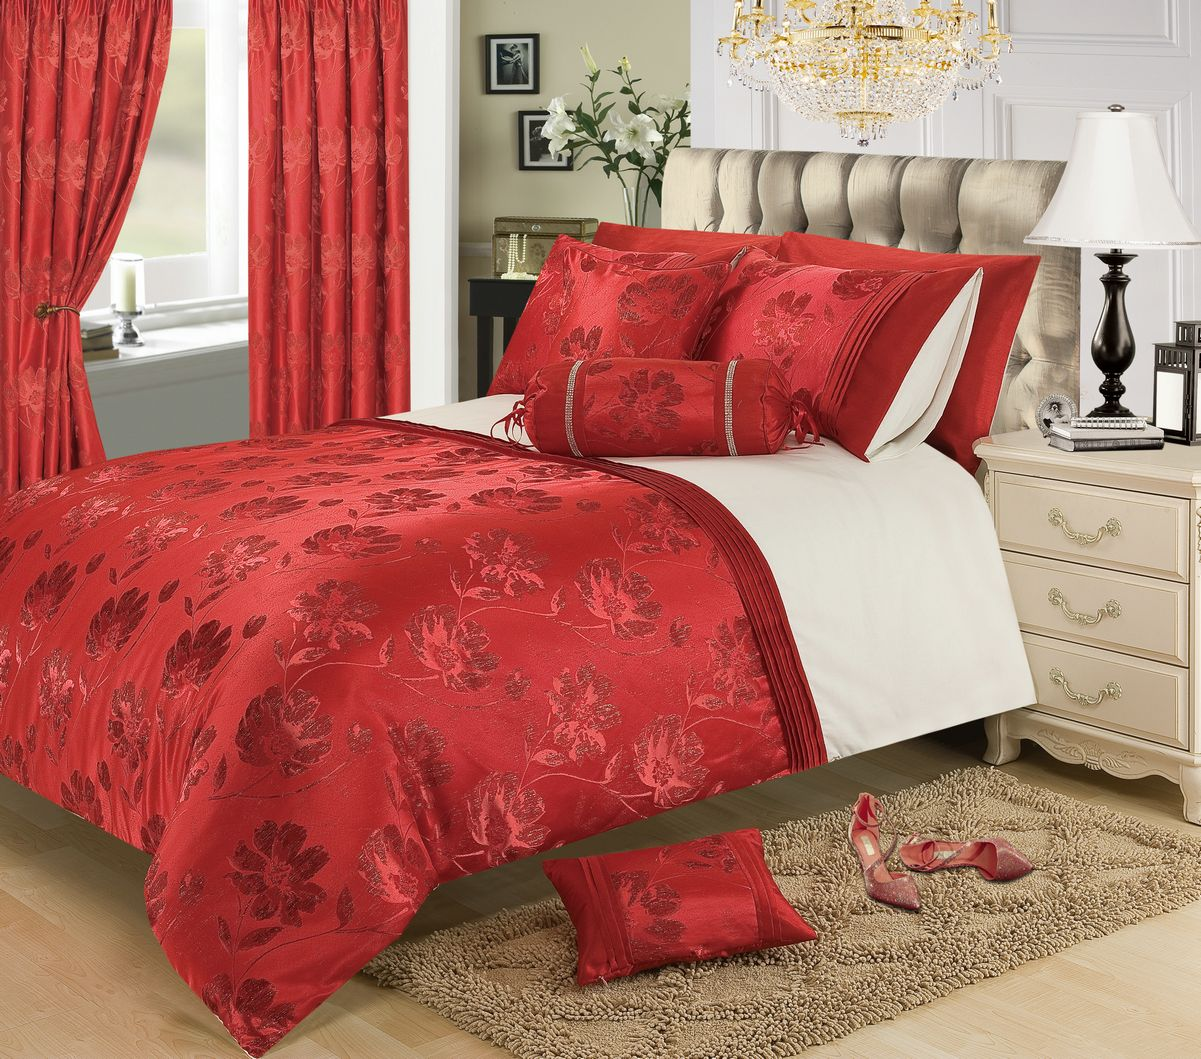 RED BURGUNDY COLOUR STYLISH FLORAL JACQUARD DUVET COVER LUXURY BEAUTIFUL GLAMOUR BEDDING